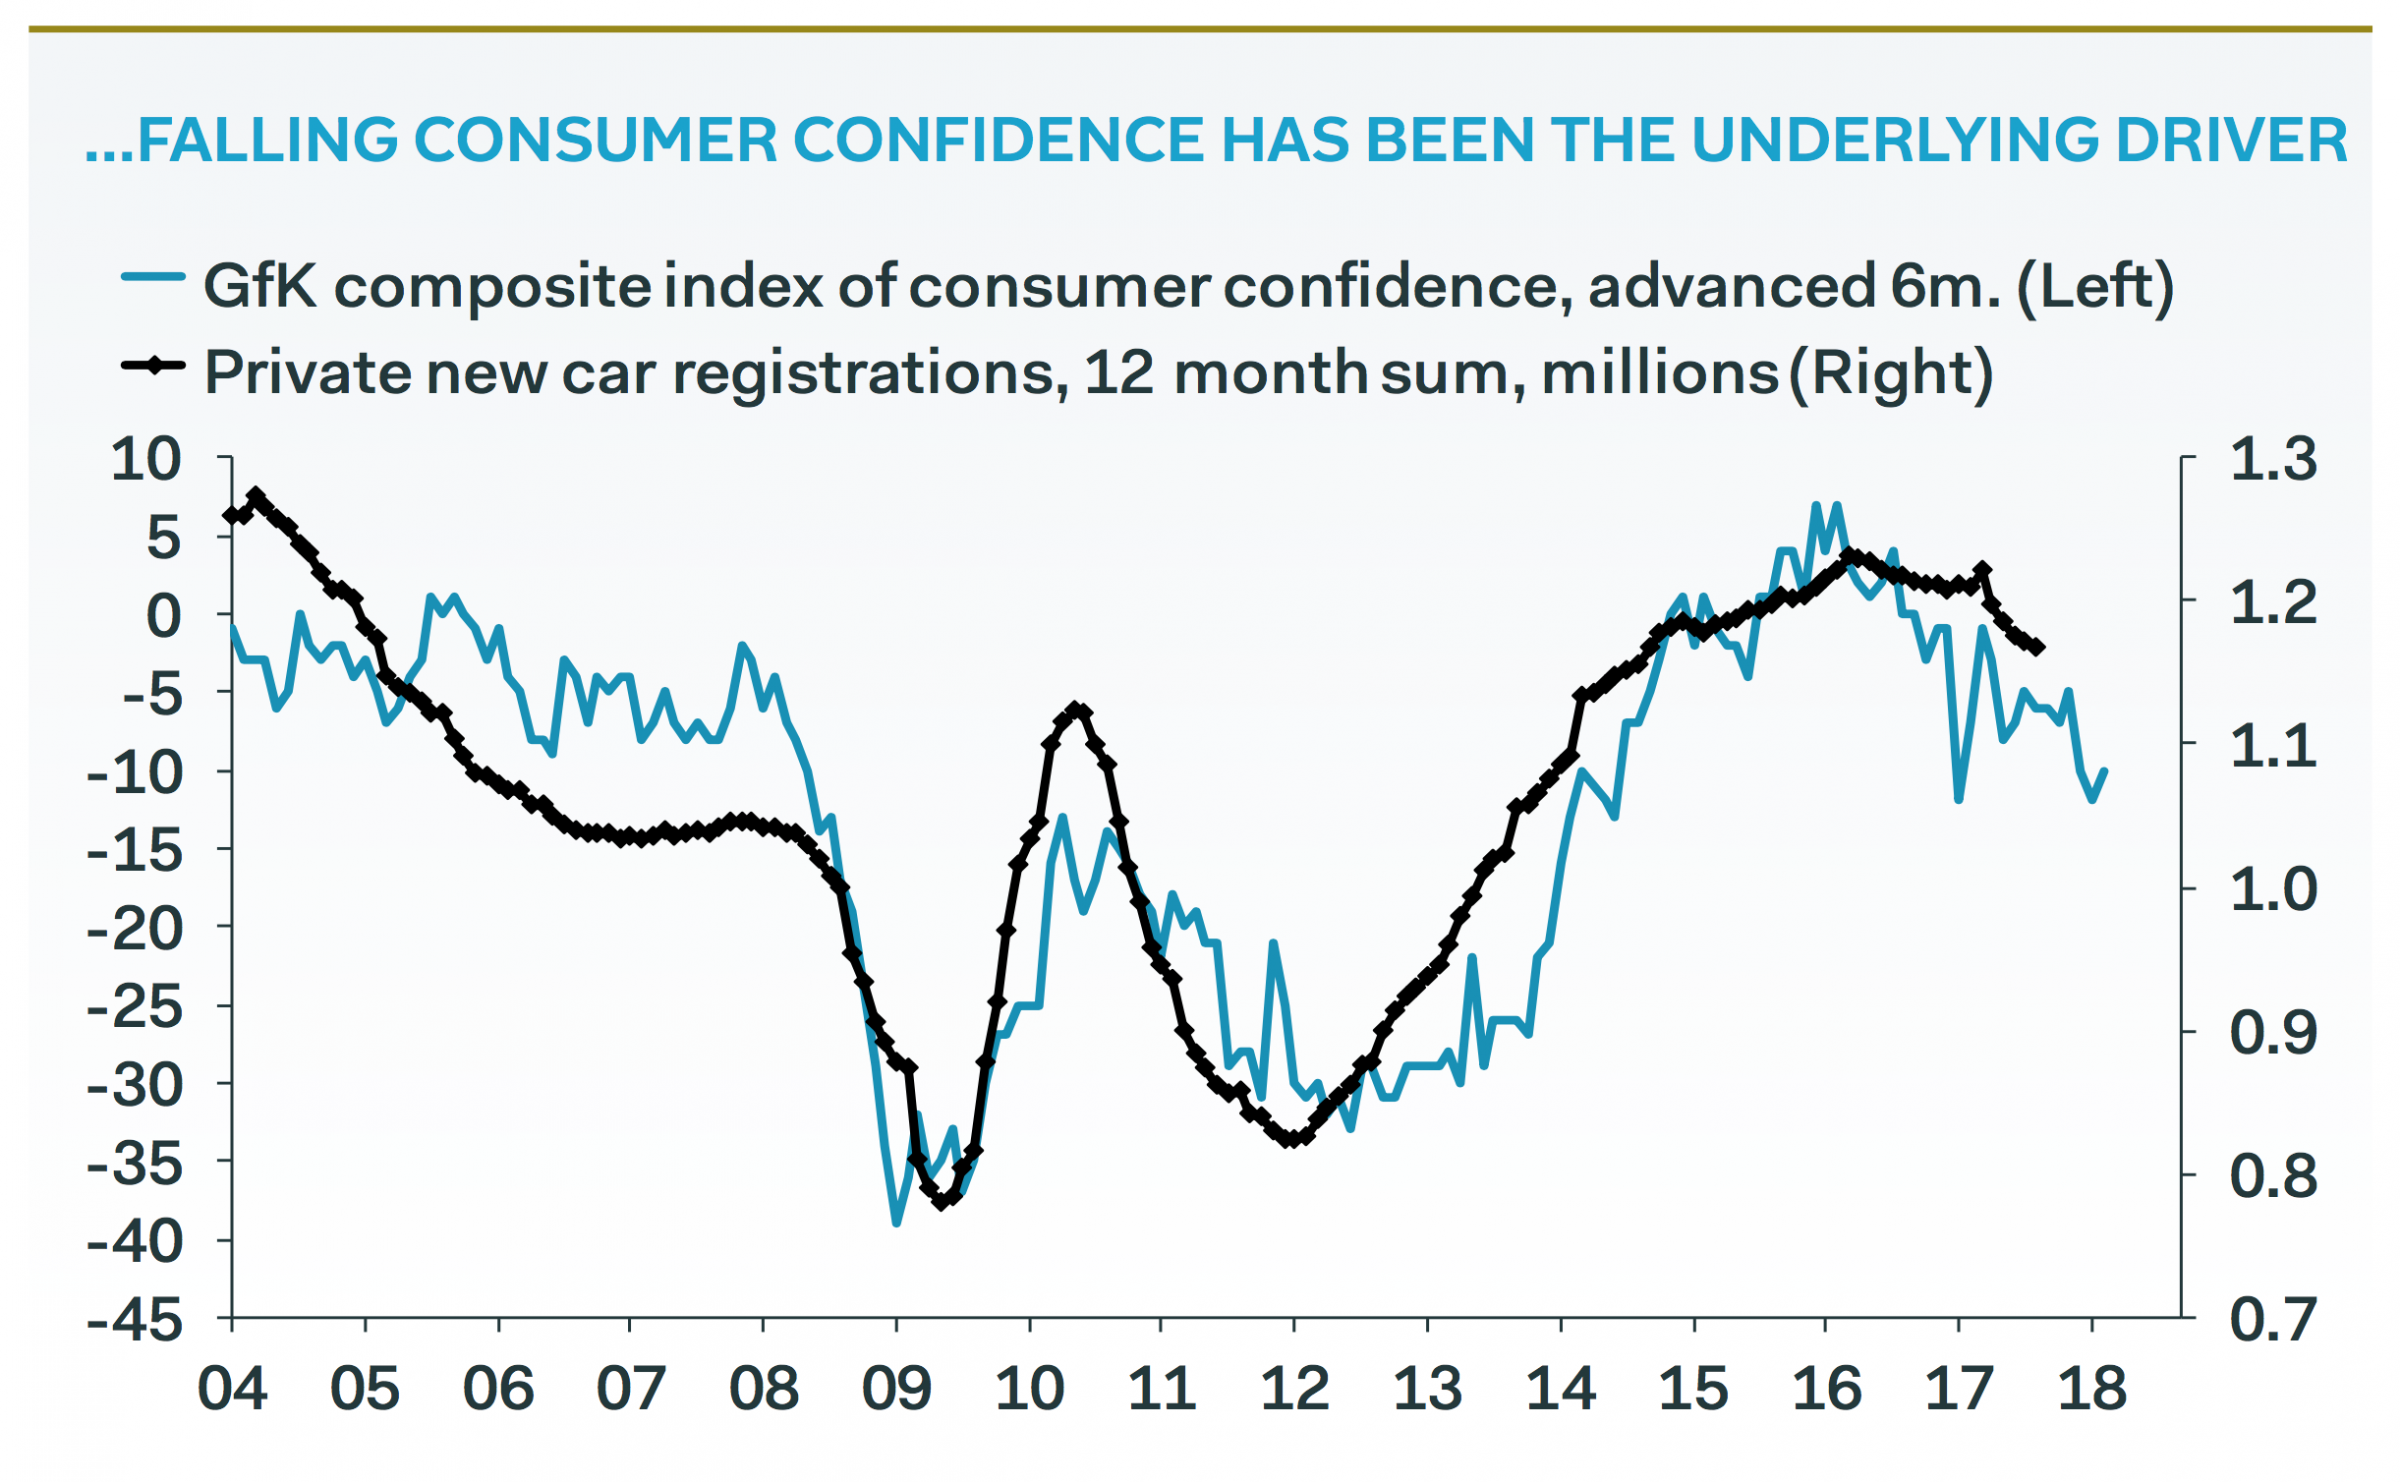 Composite index of consumer confidence and Private New car registrations, 2004 - 2018